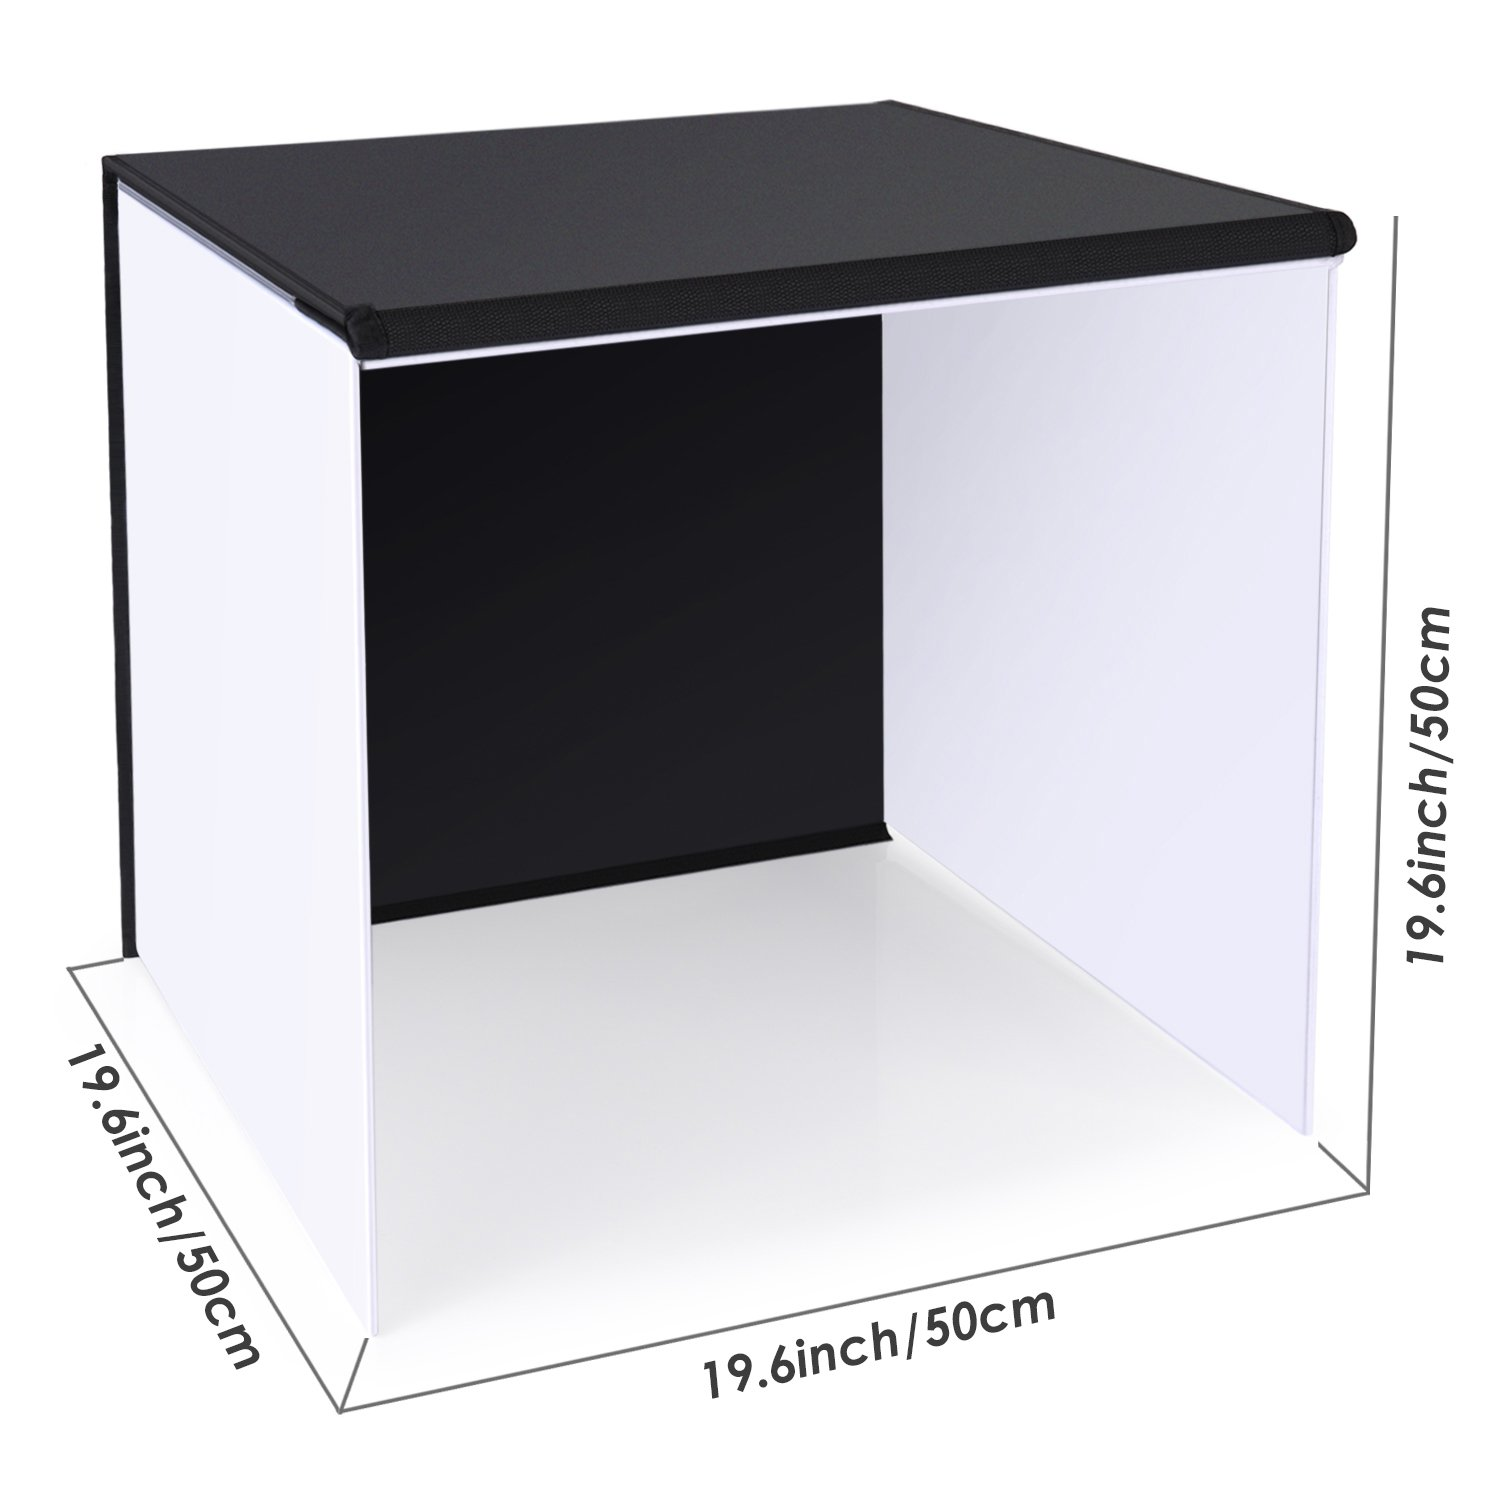 Neewer 20''x20''/50x50cm Table Top Photo Photography Light Tent Studio Square Light Box with 4 Backgrounds by Neewer (Image #5)